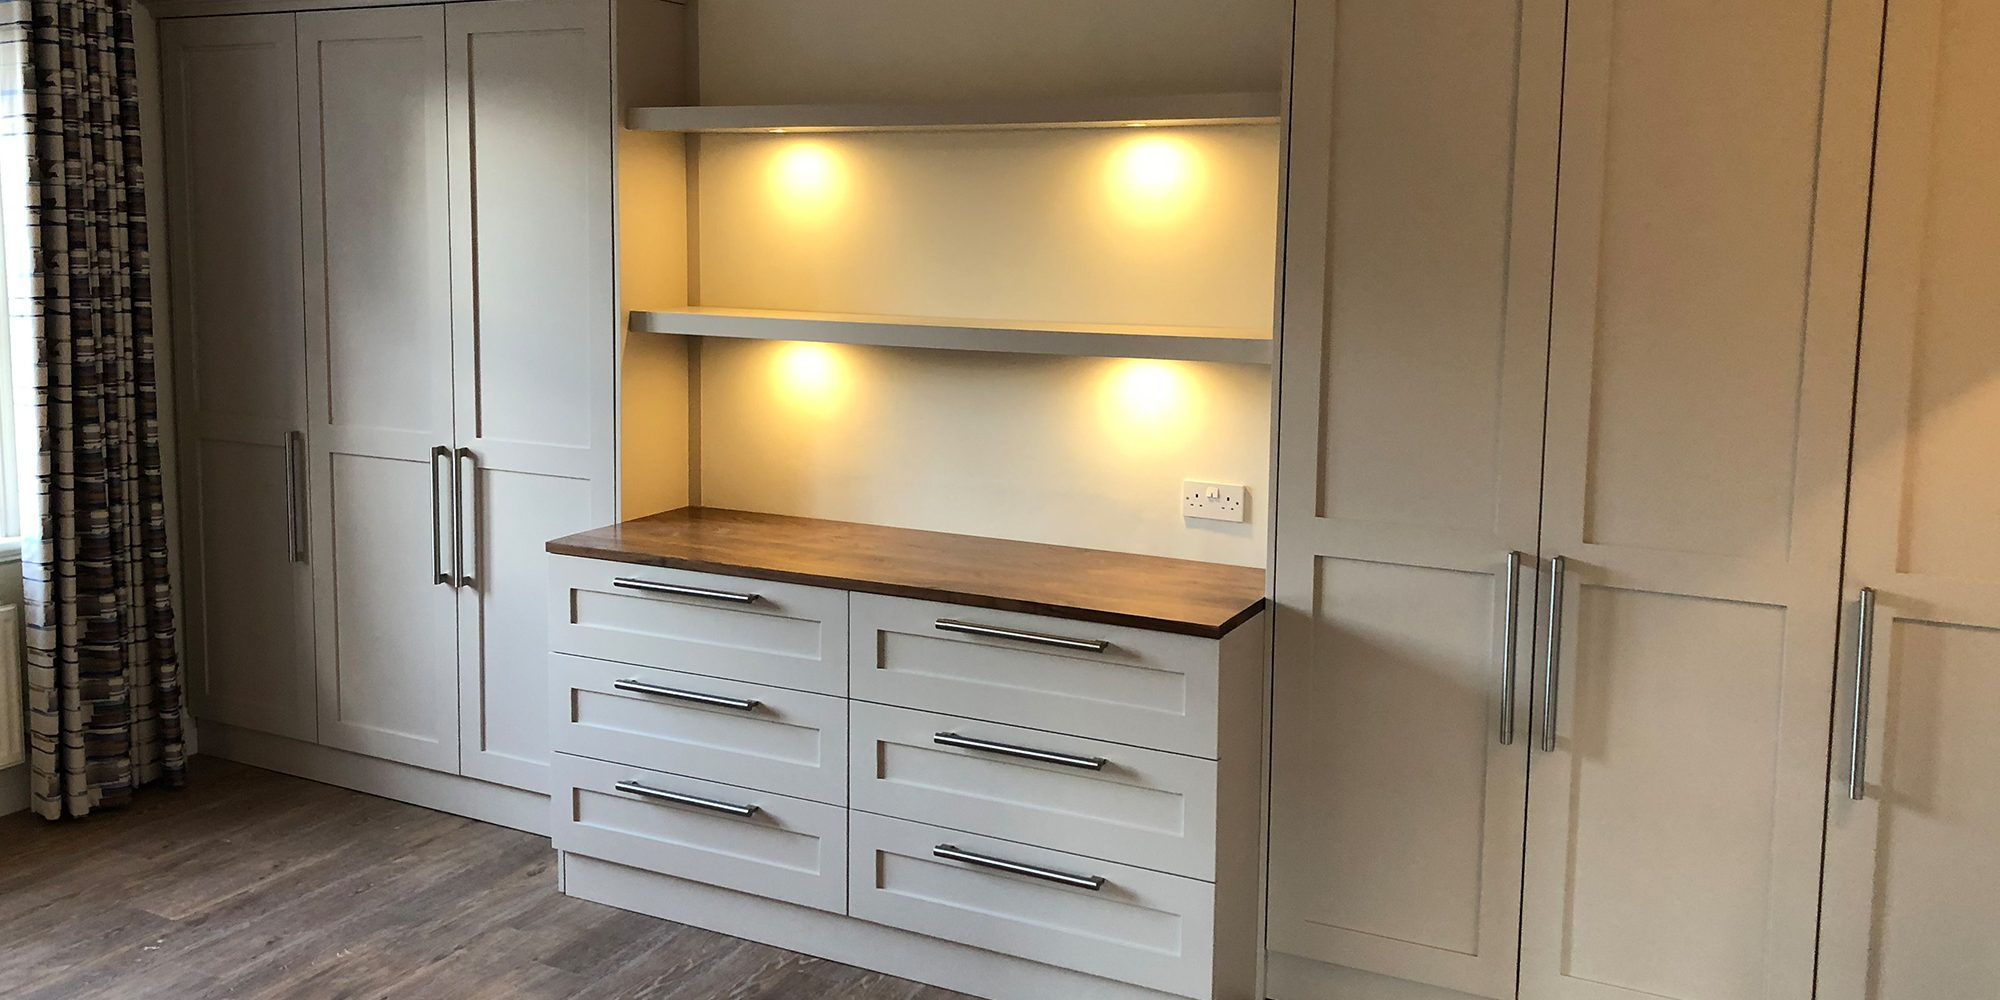 Bespoke Storage Unit and Shelves - Bourne's Fine Furniture Sussex